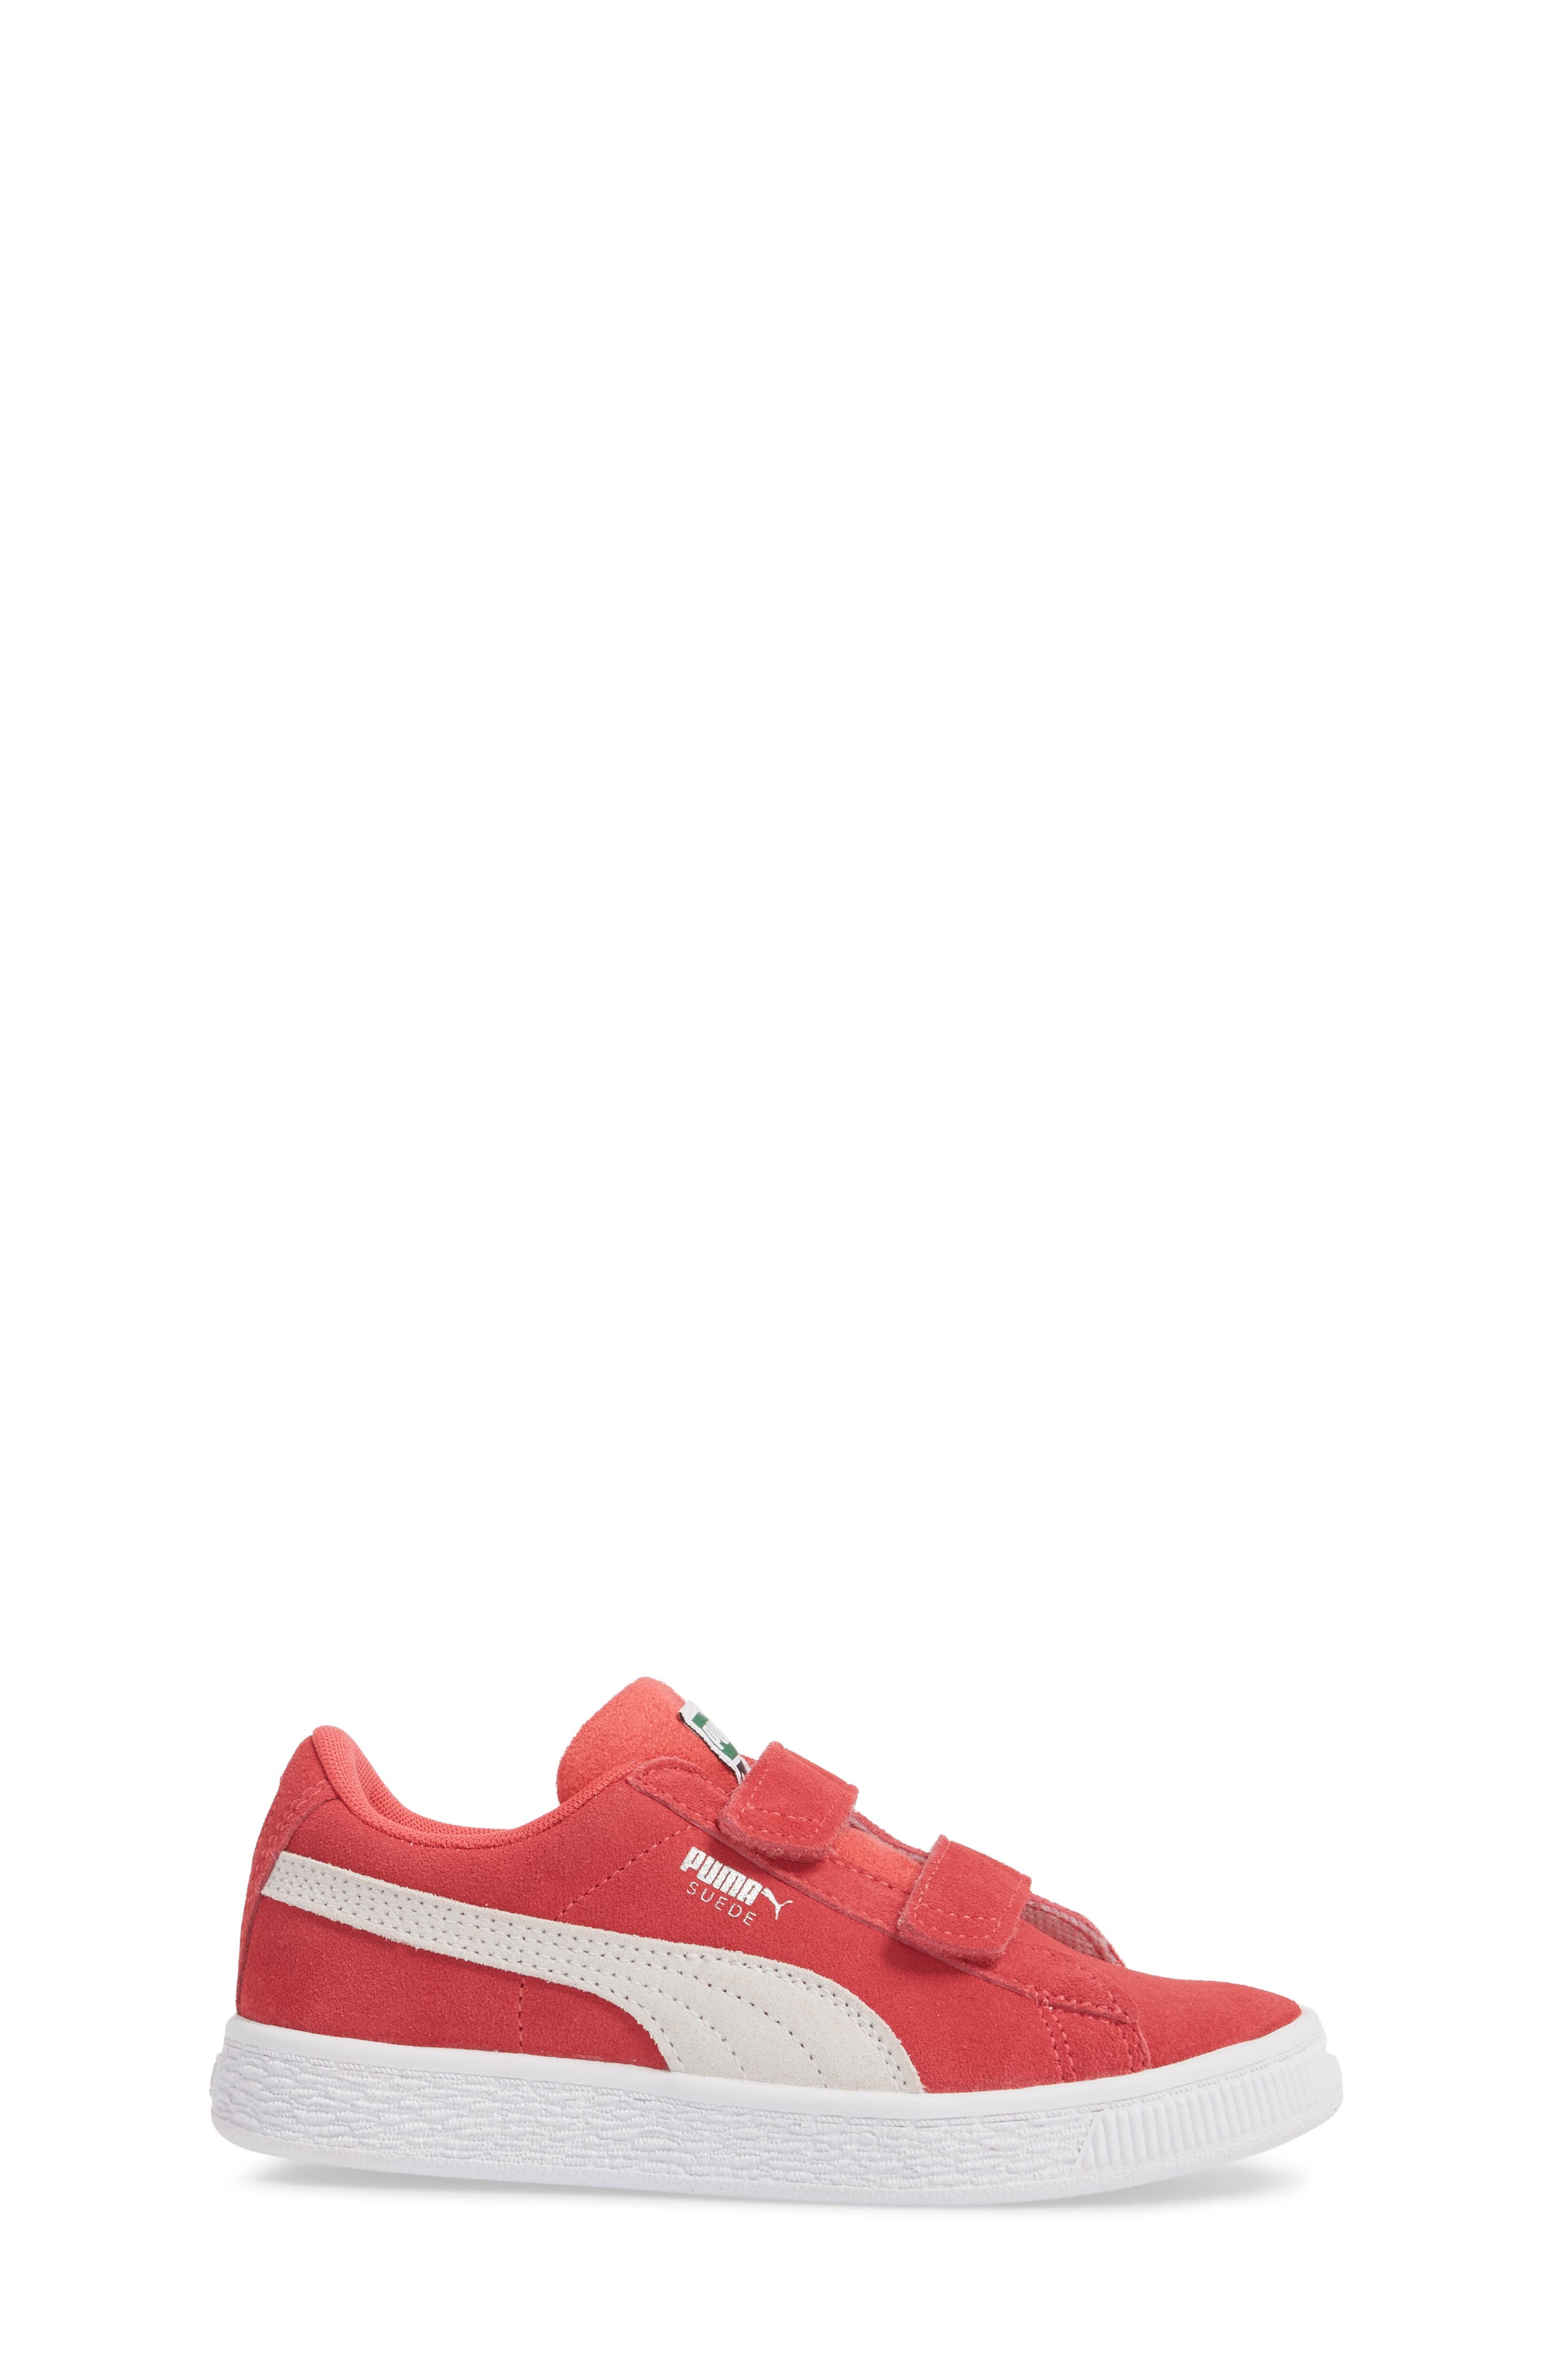 Suede Classic Sneaker,                             Alternate thumbnail 3, color,                             PARADISE PINK/ PUMA WHITE